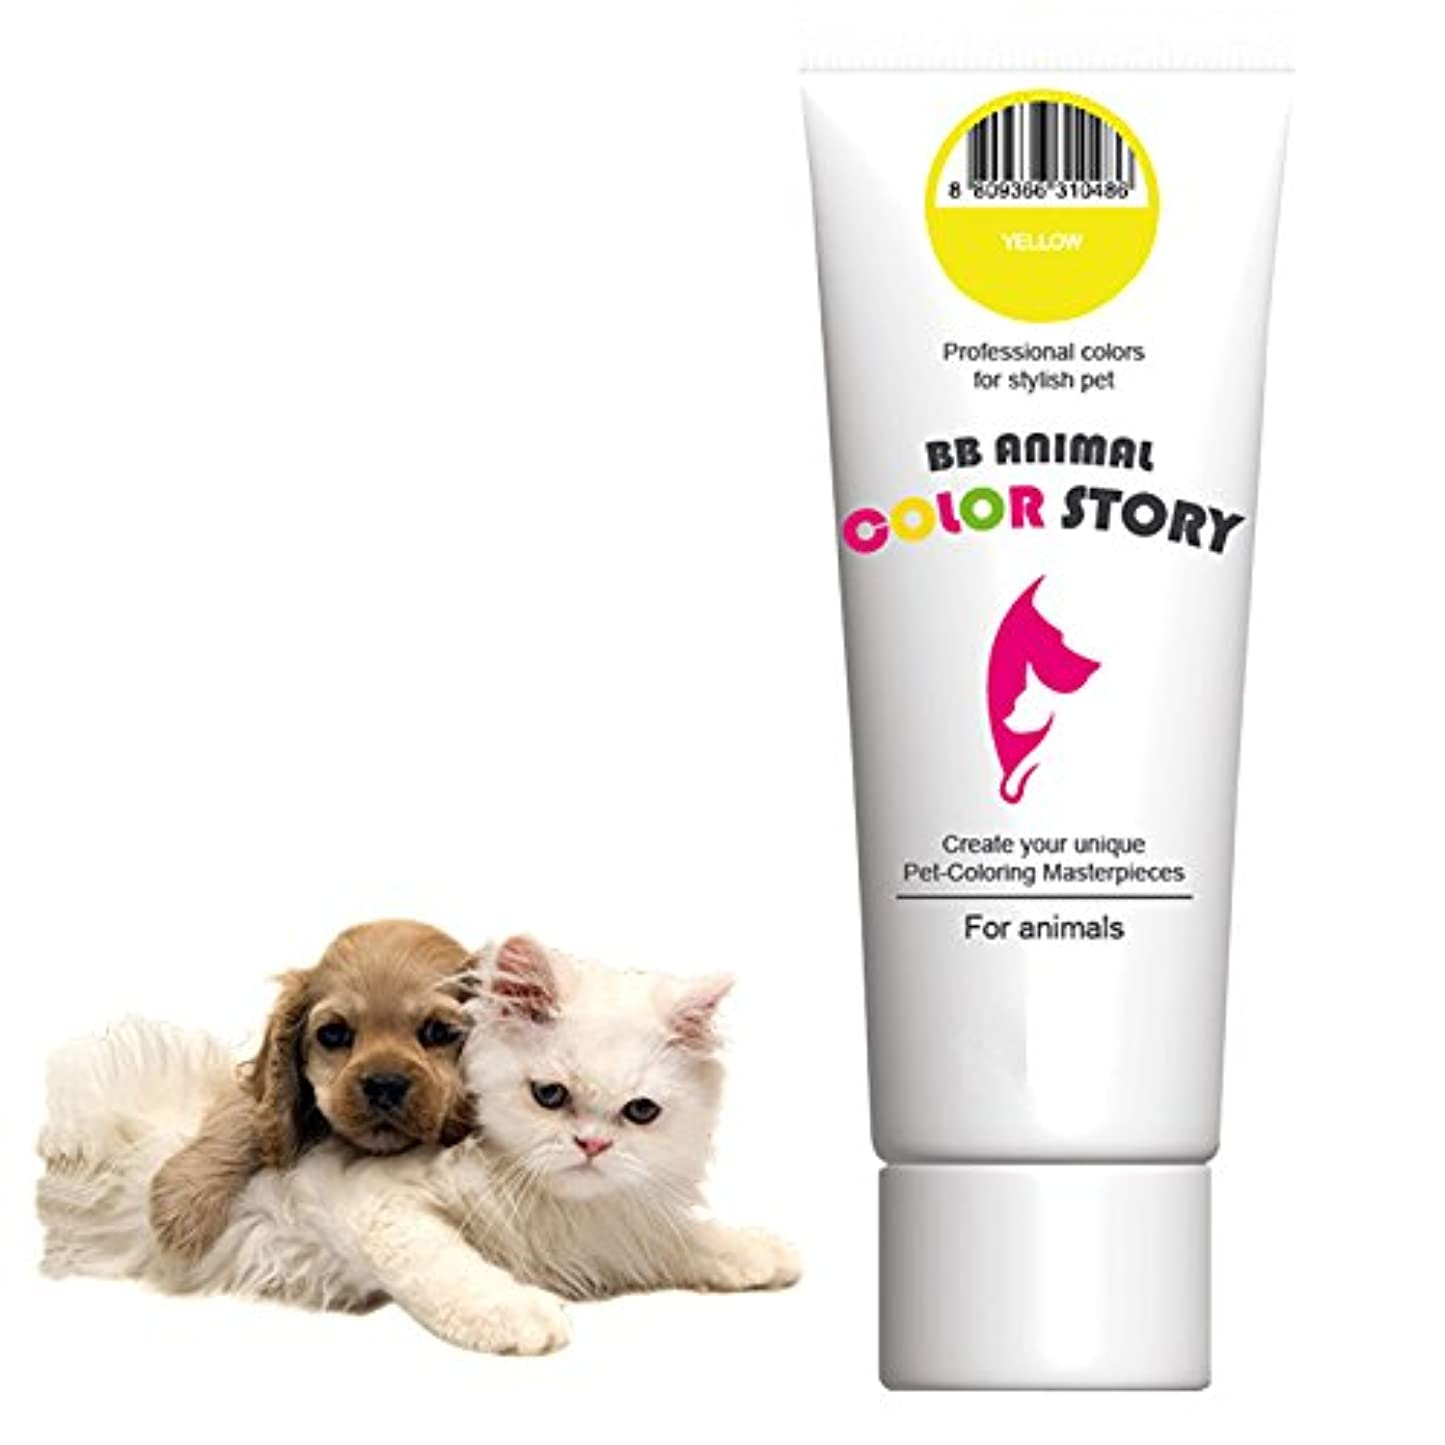 北極圏重要性大学生毛染め, 犬ヘアダイ Yellow カラーリング Dog Hair Hair Bleach Dye Hair Coloring Professional Colors for Stylish Pet 50ml 並行輸入